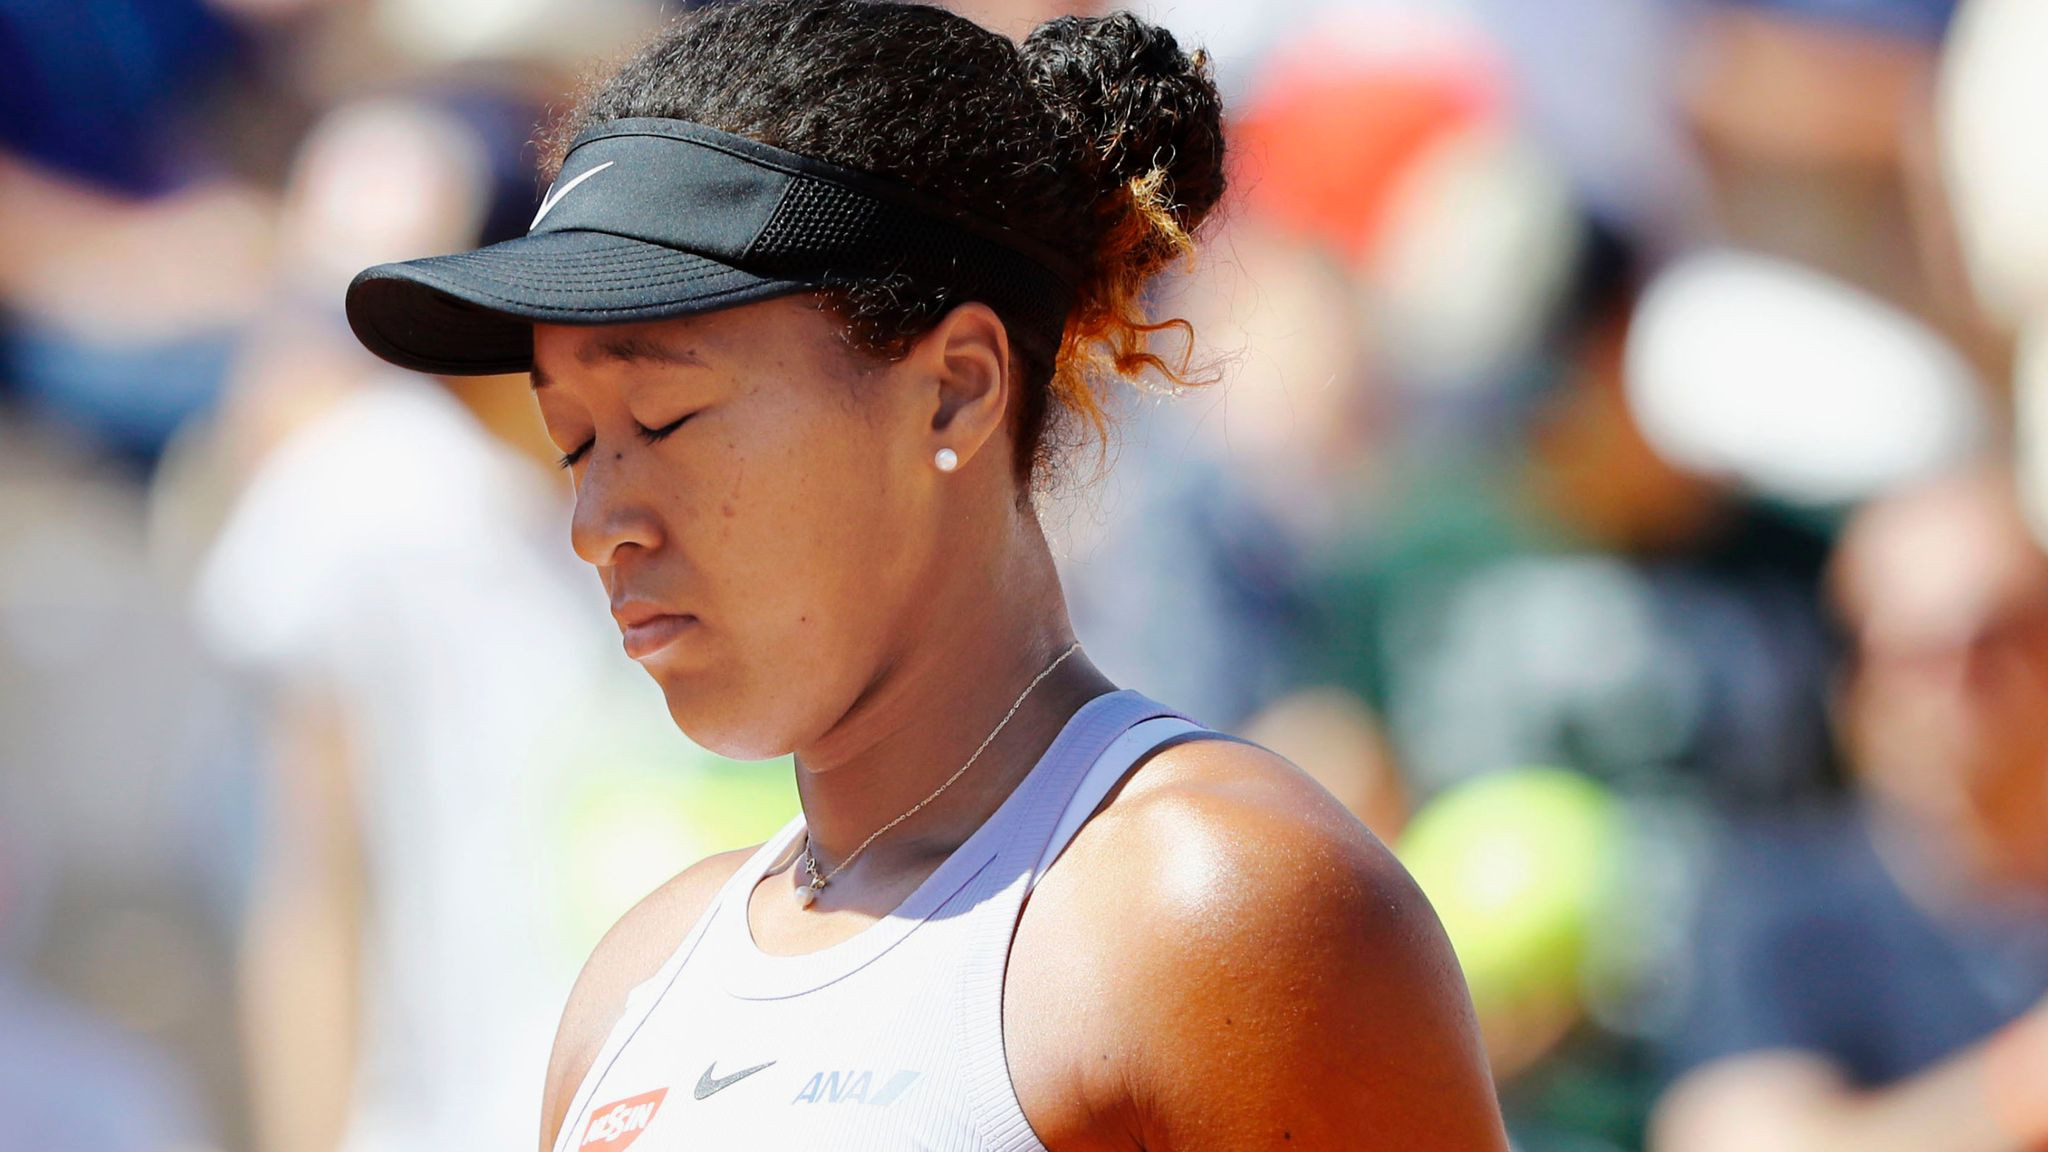 French Open: Naomi Osaka responds after she is fined $15k for skipping press conference